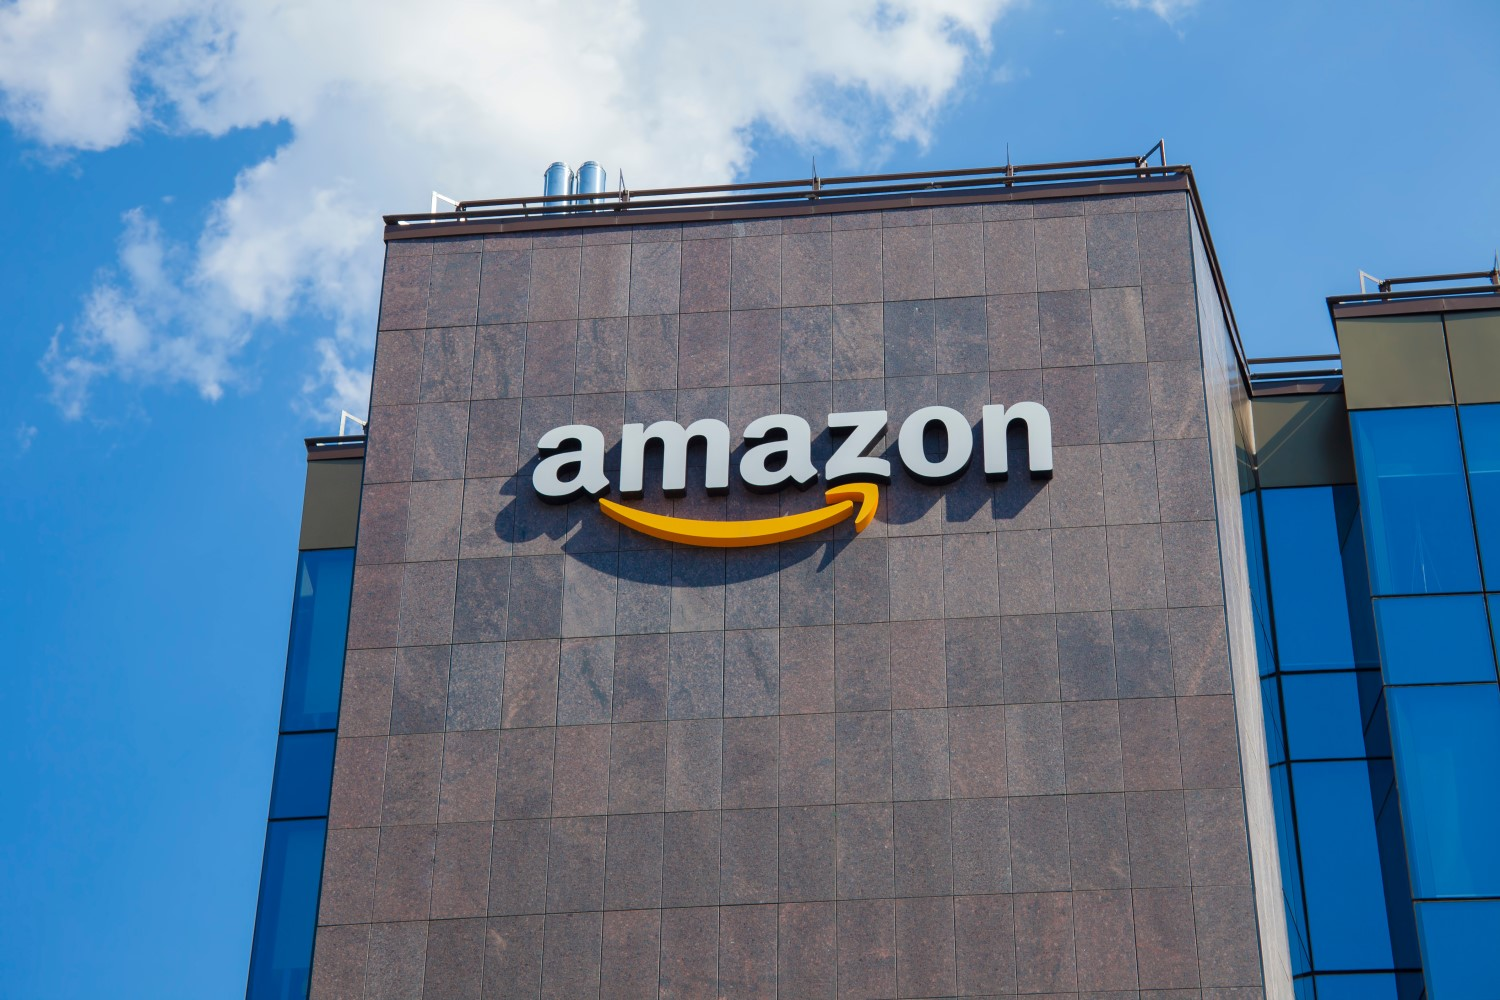 With New Roles in Amazon, Walmart and Binance Crypto Industry Gets De Facto Fully Legalized